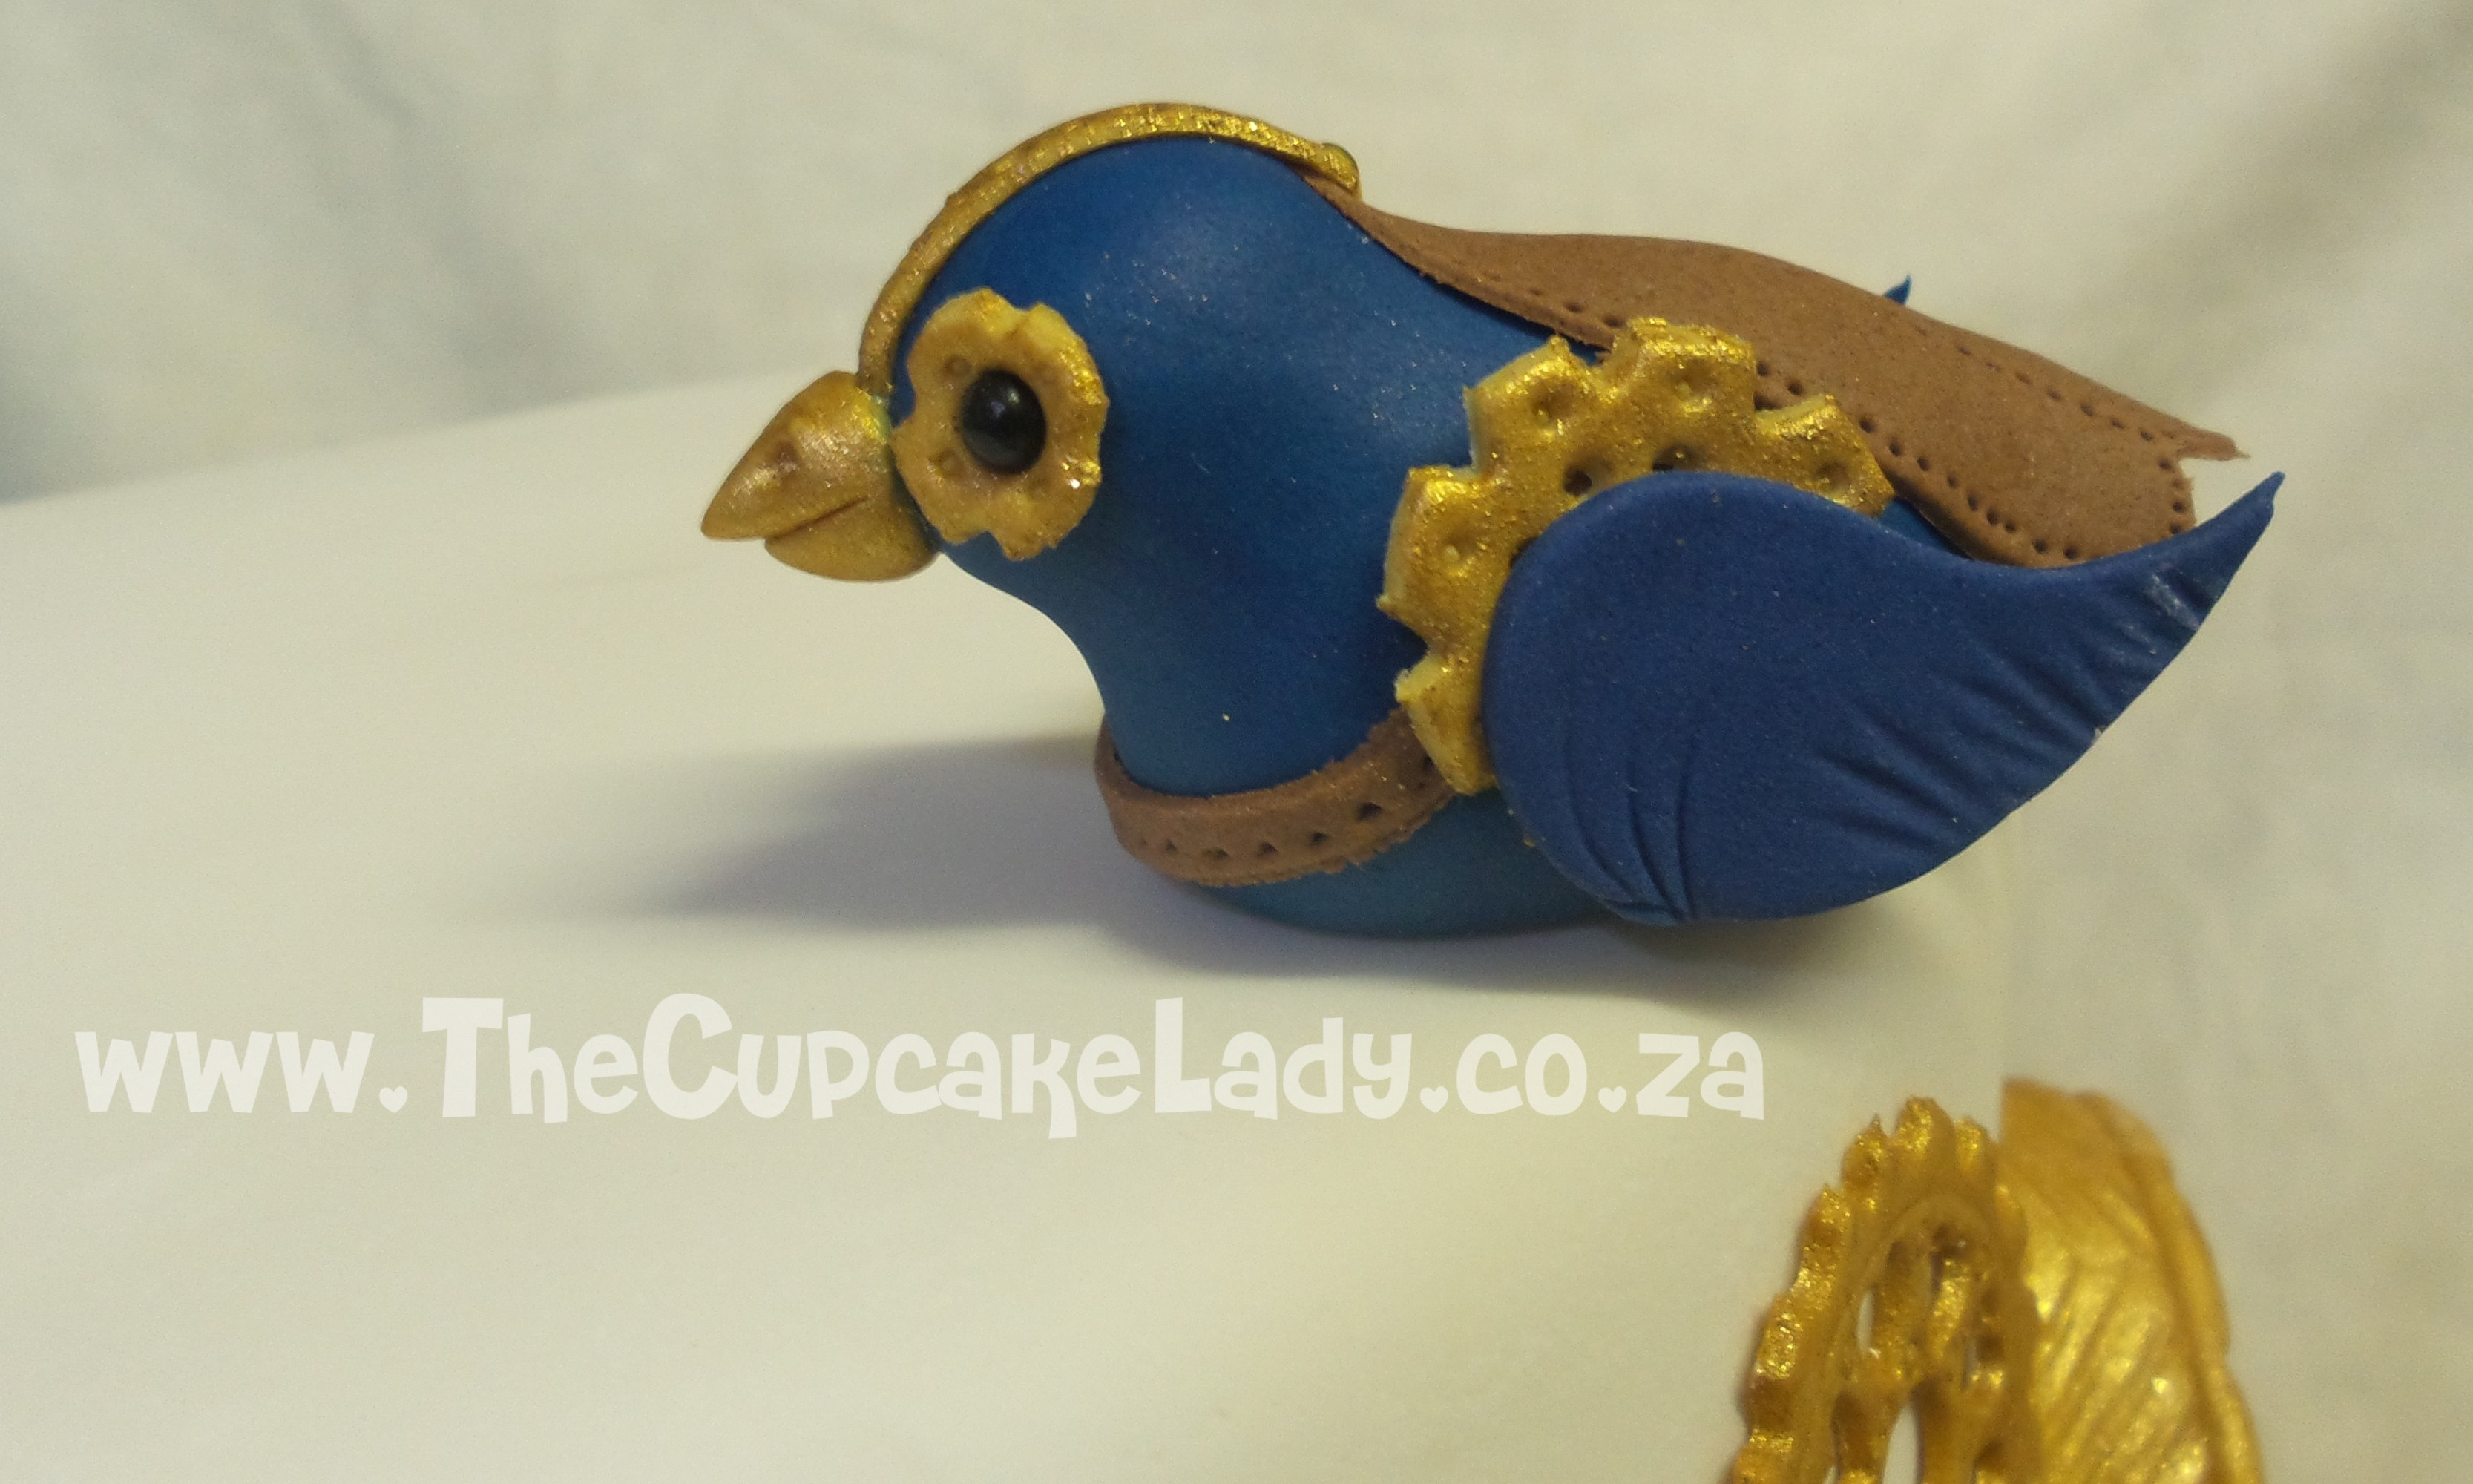 This birthday cake is two-tiers of vanilla cake with vanilla butter icing, decorated with custom made Steampunk themed accents in blue and gold - cogs and wheels, a pocket watch, lady bug, butterfly, bird, key, feathers and roses.